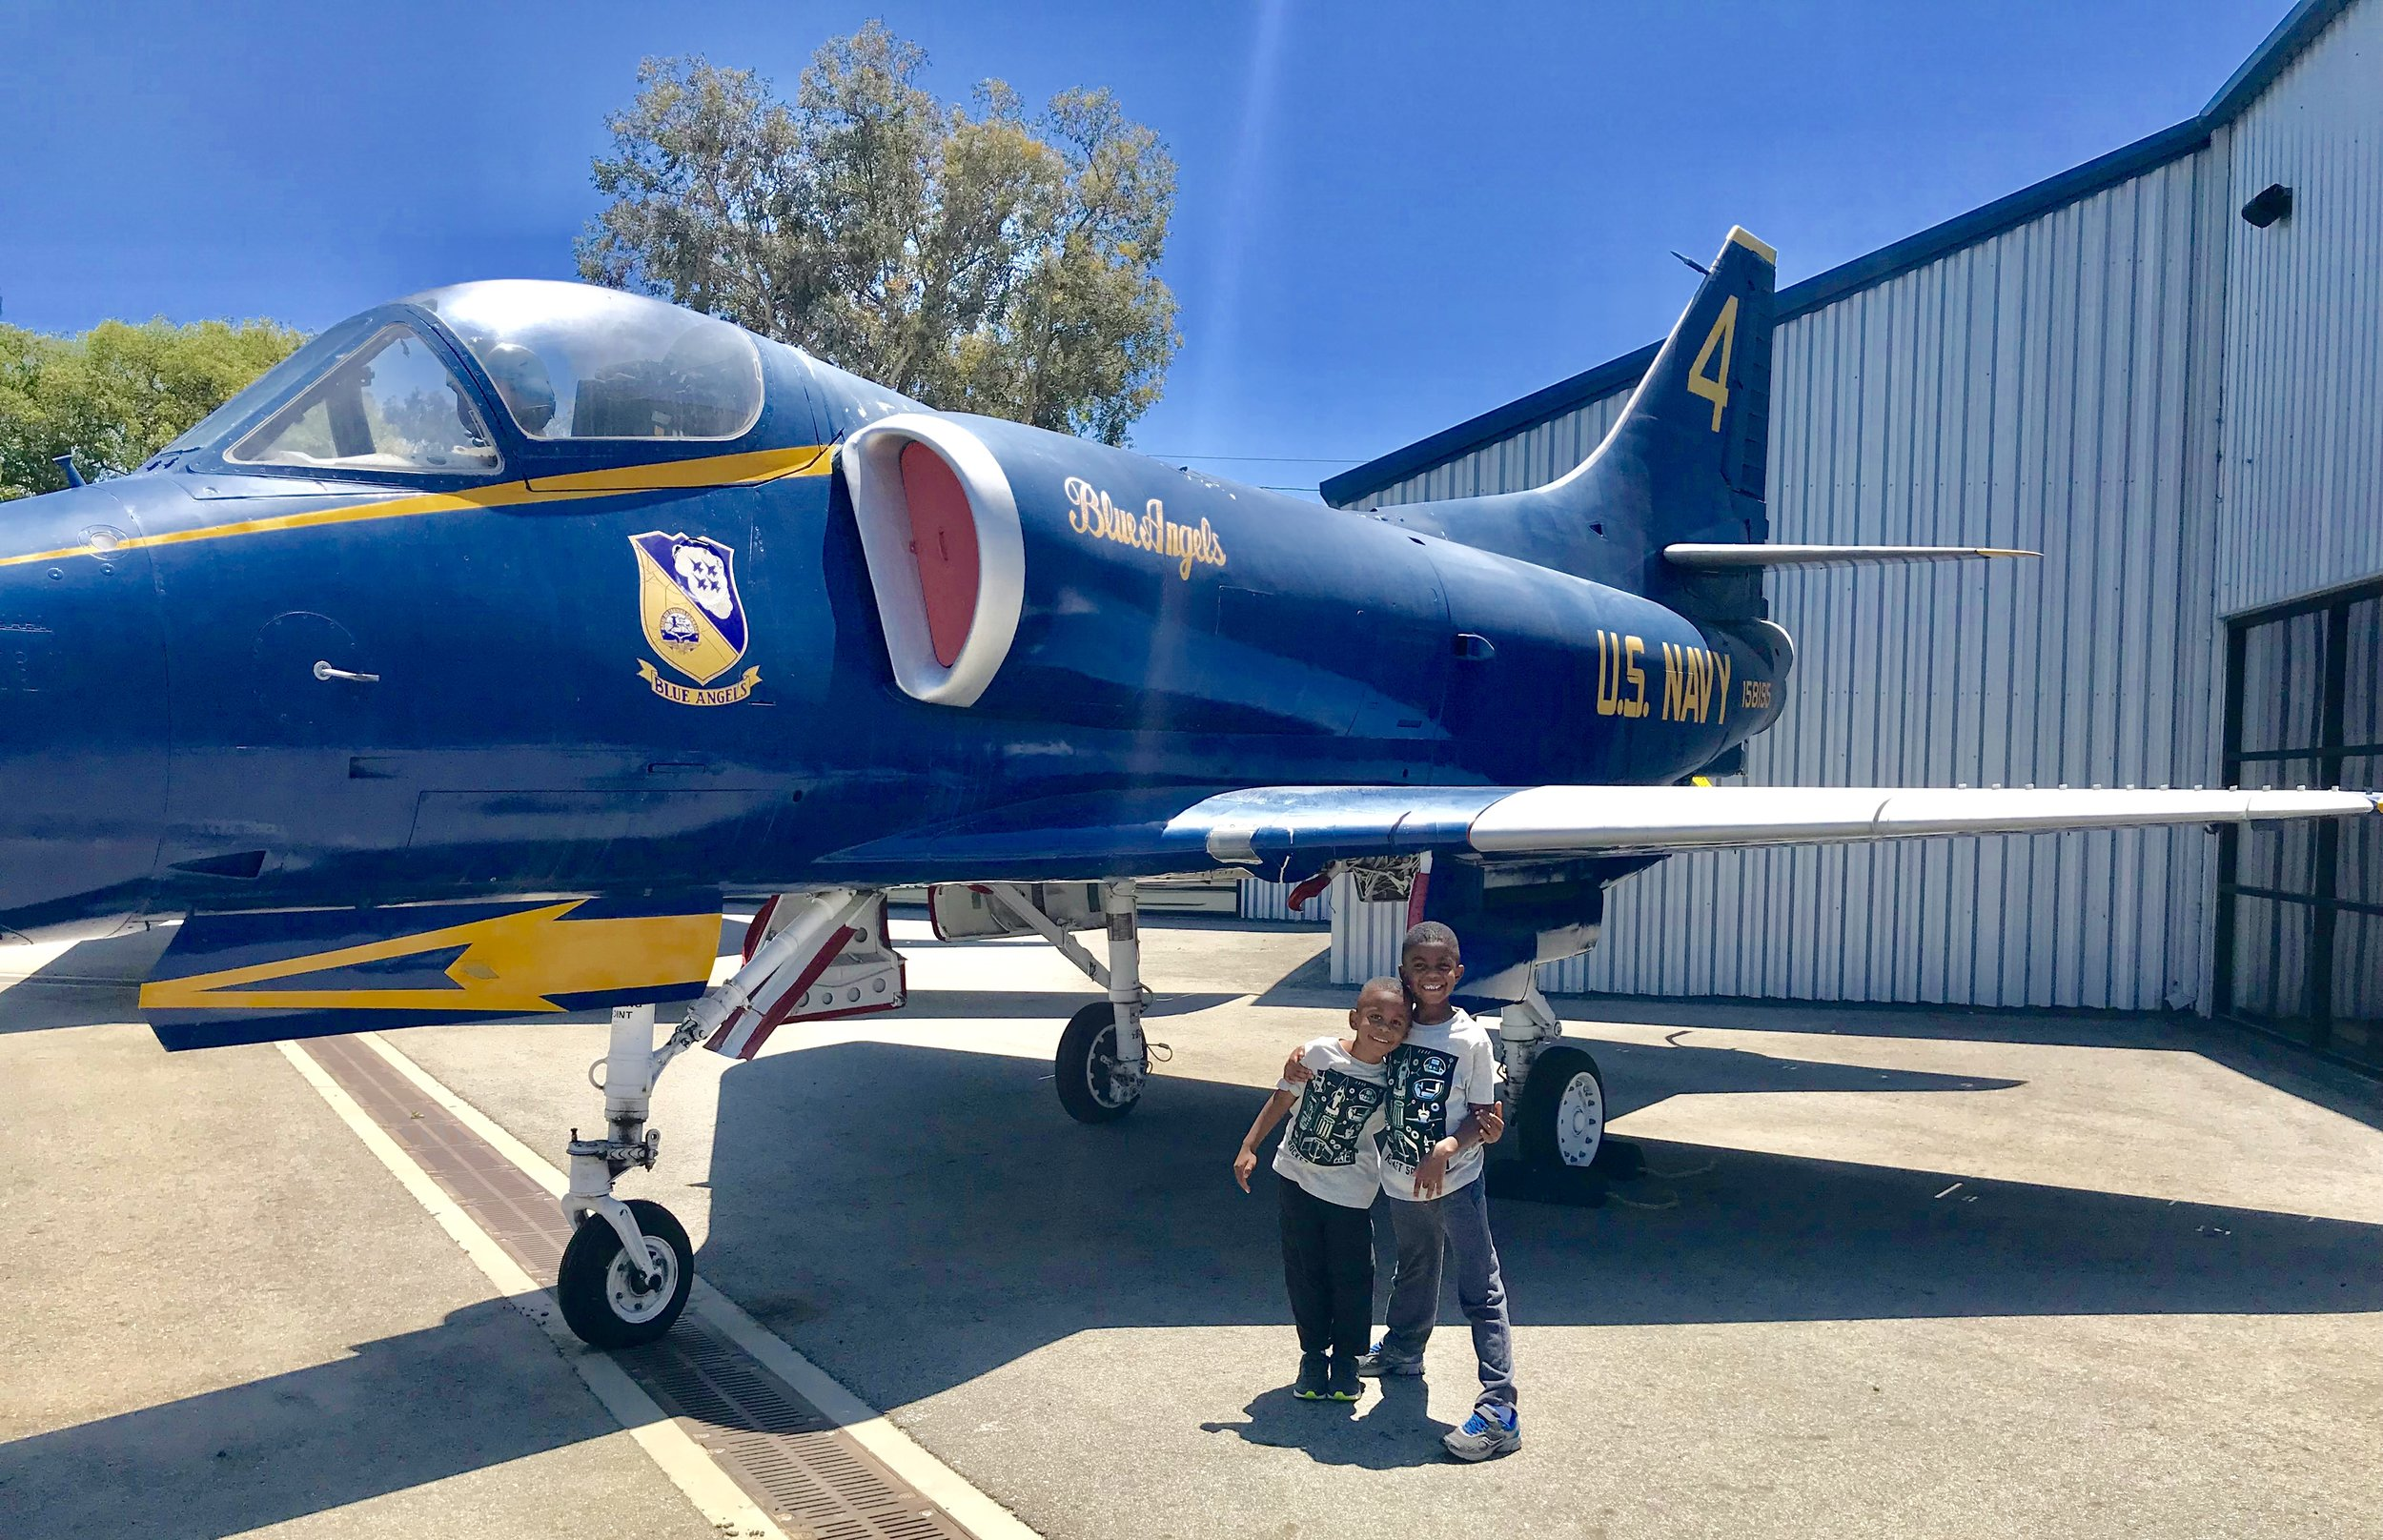 Blue Angles Static Display Museum of Flying